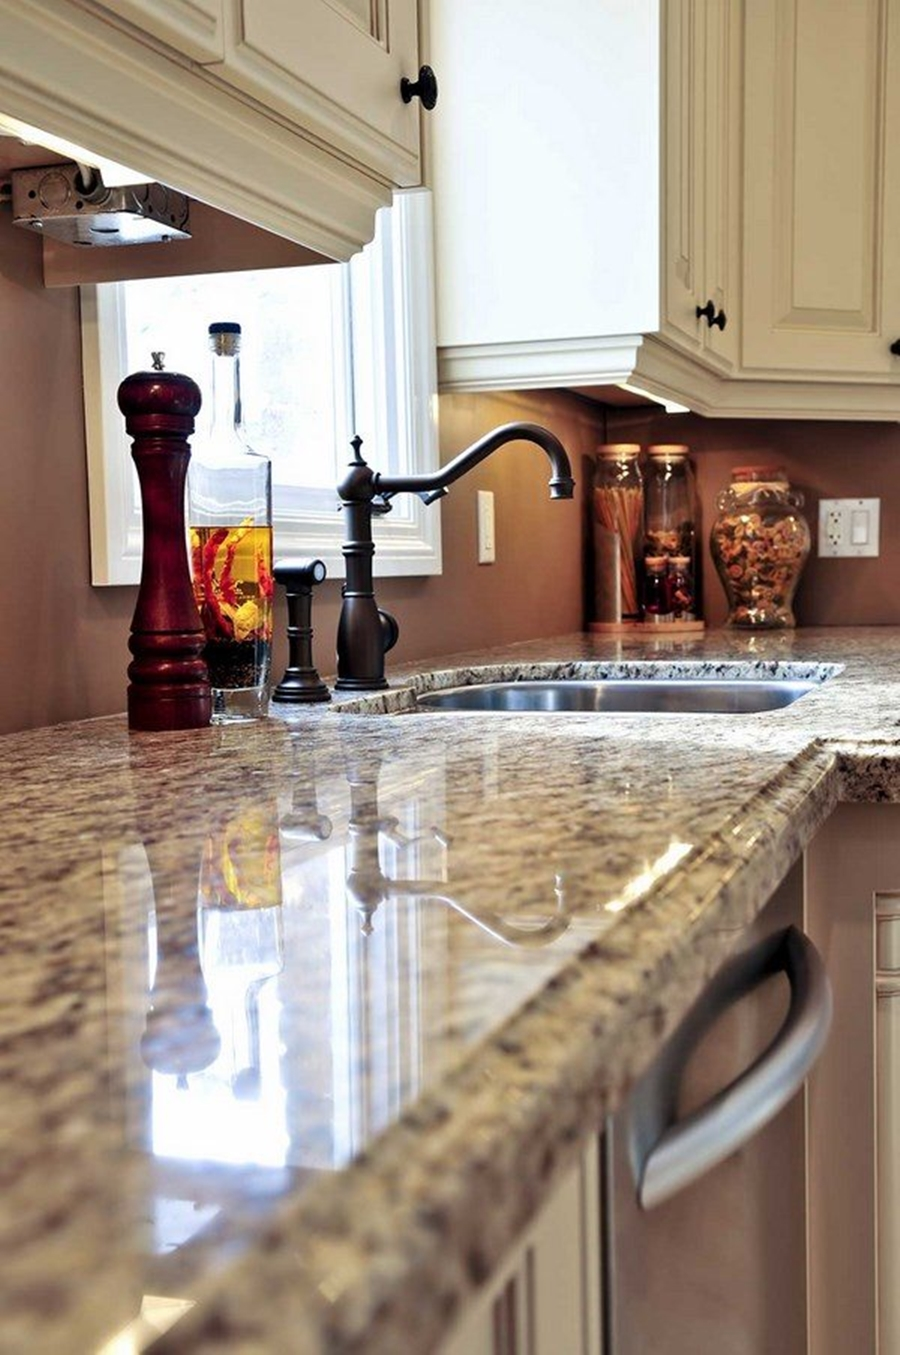 Water Marble Countertop : How to remove hard water stains from granite countertops